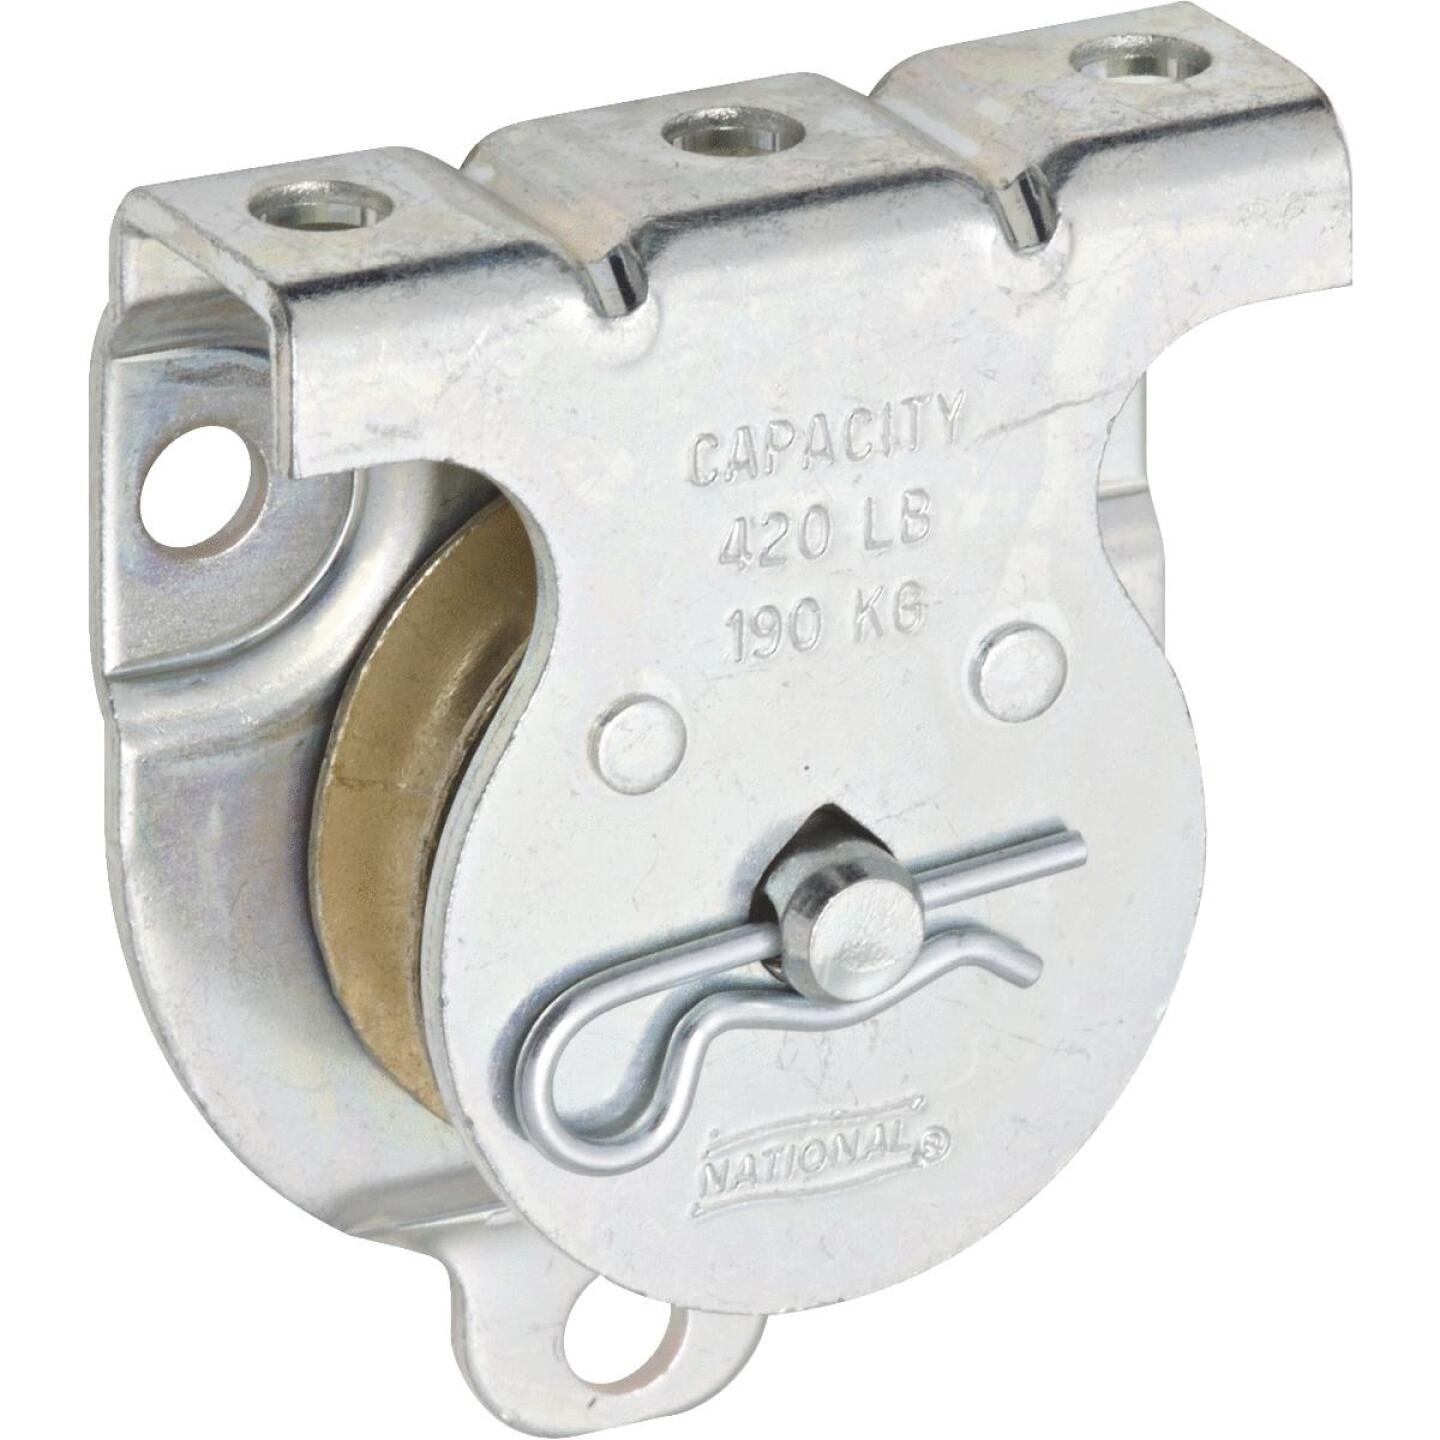 National 1-1/2 In. O.D. Single Wall/Ceiling Mount Rope Pulley Image 1